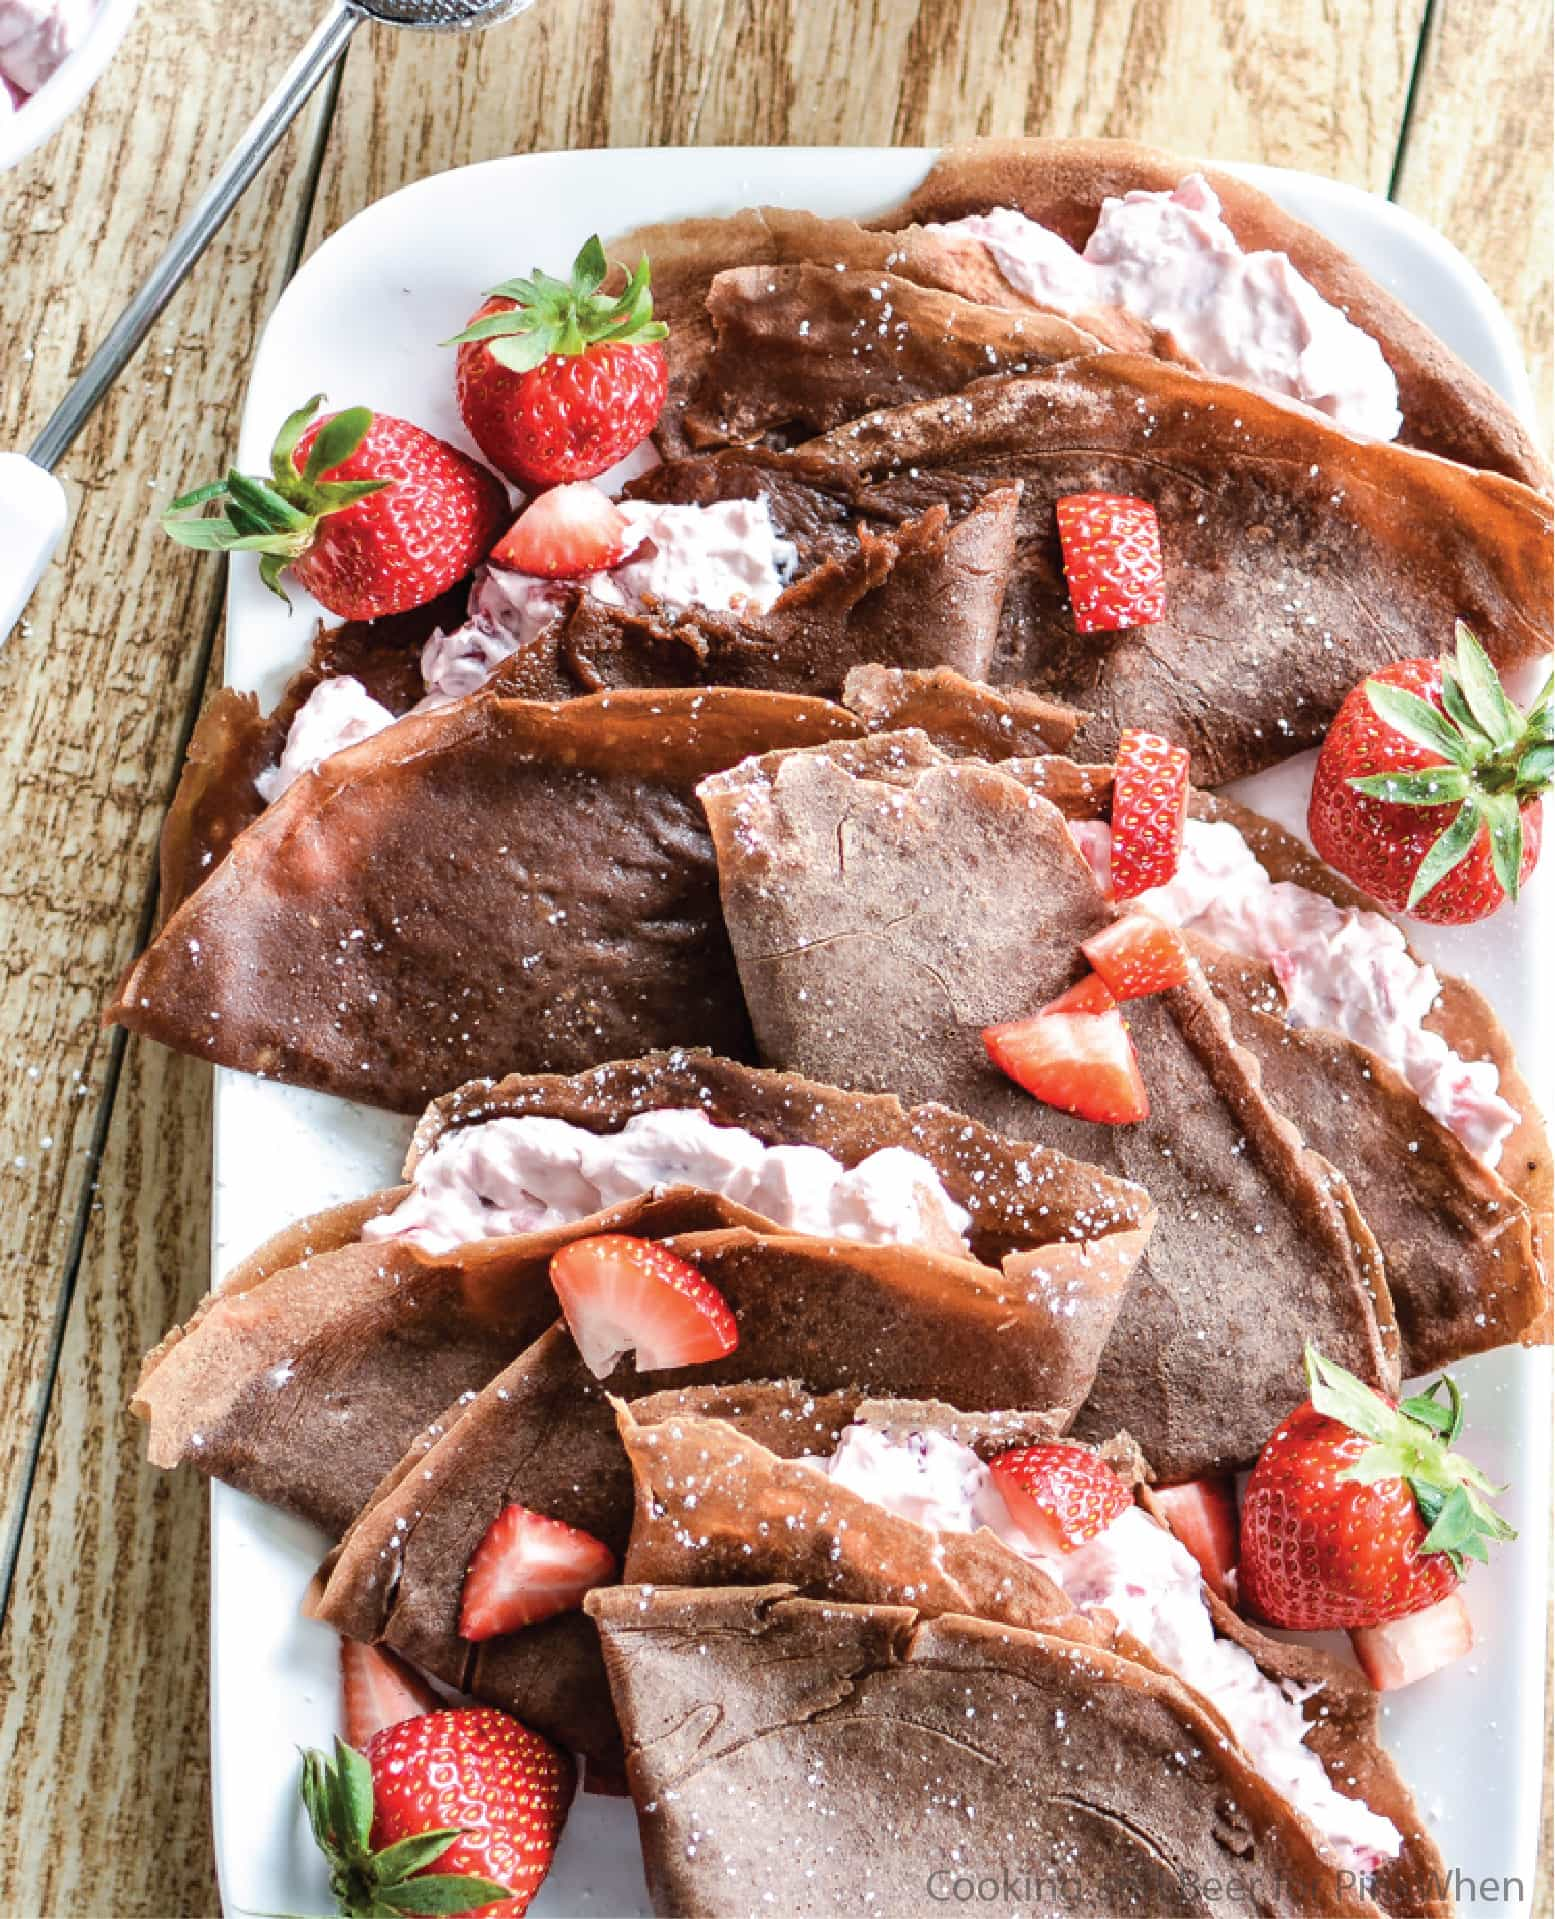 Strawberry Cheesecake Chocolate Crepes served on a white dish.